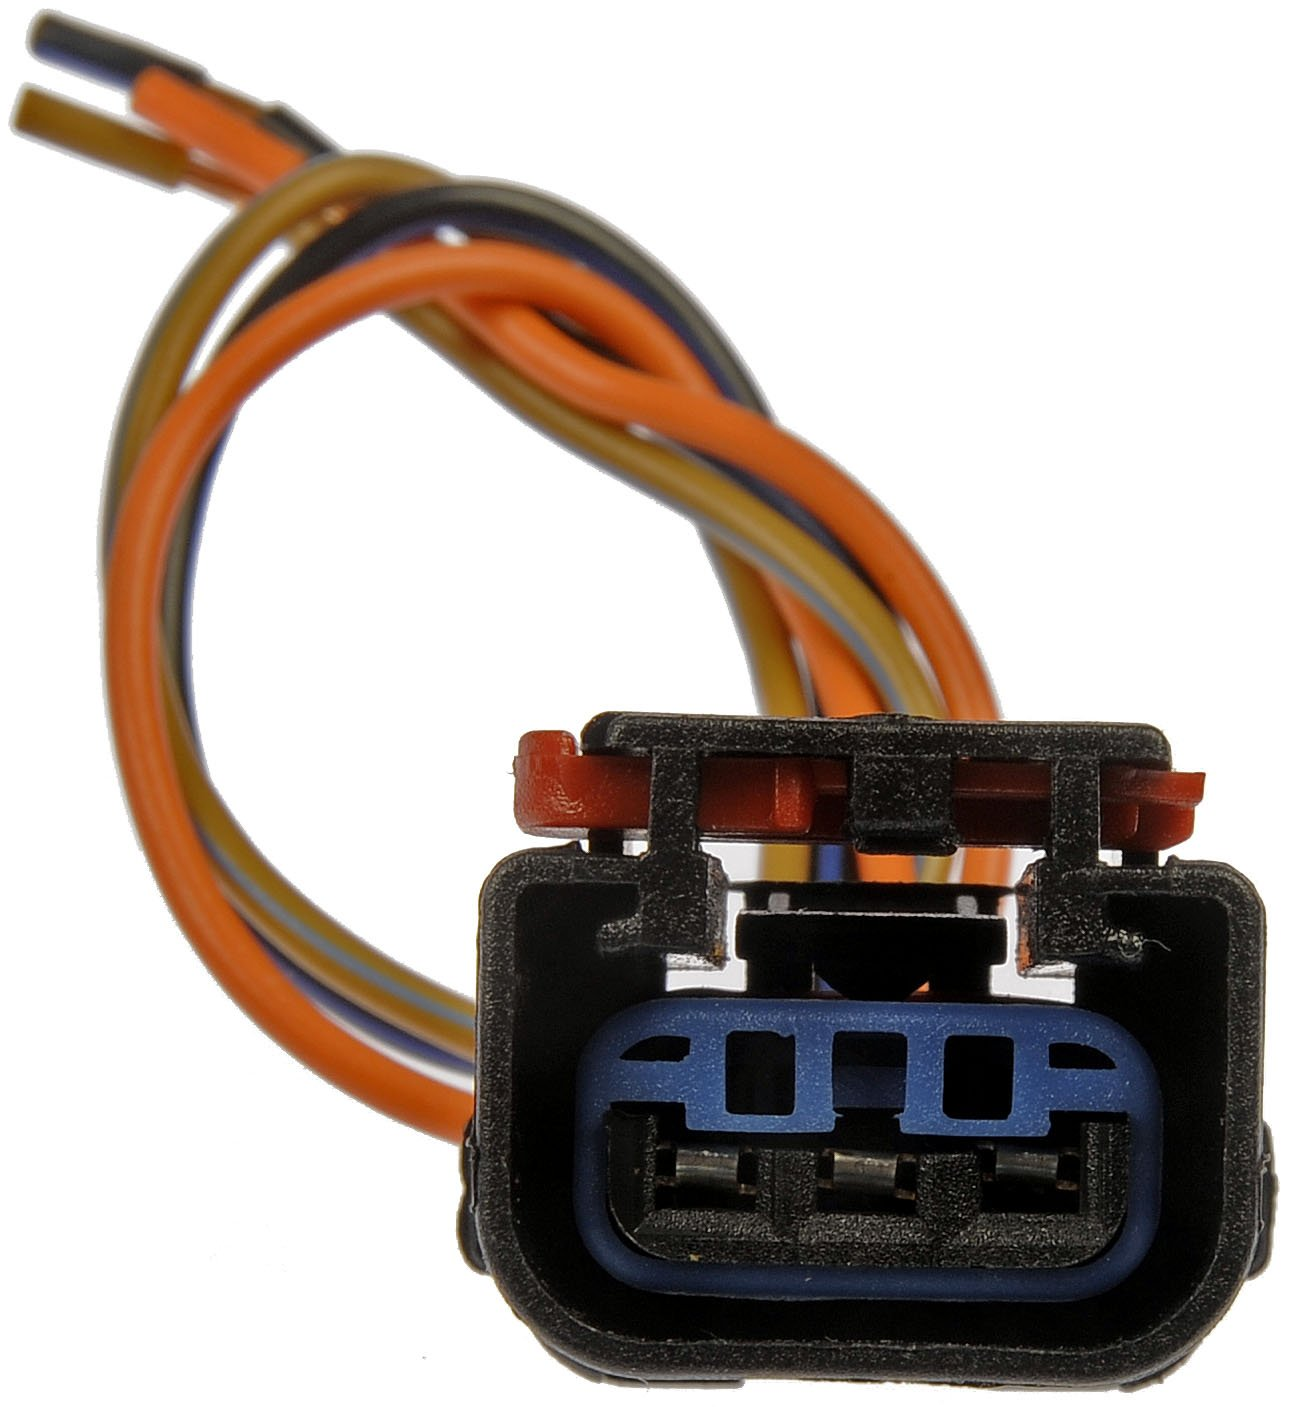 71Yk0ug33cL._SL1407_ amazon com dorman 645 187 3 wire electrical socket harness 4 wire harness connector at bayanpartner.co